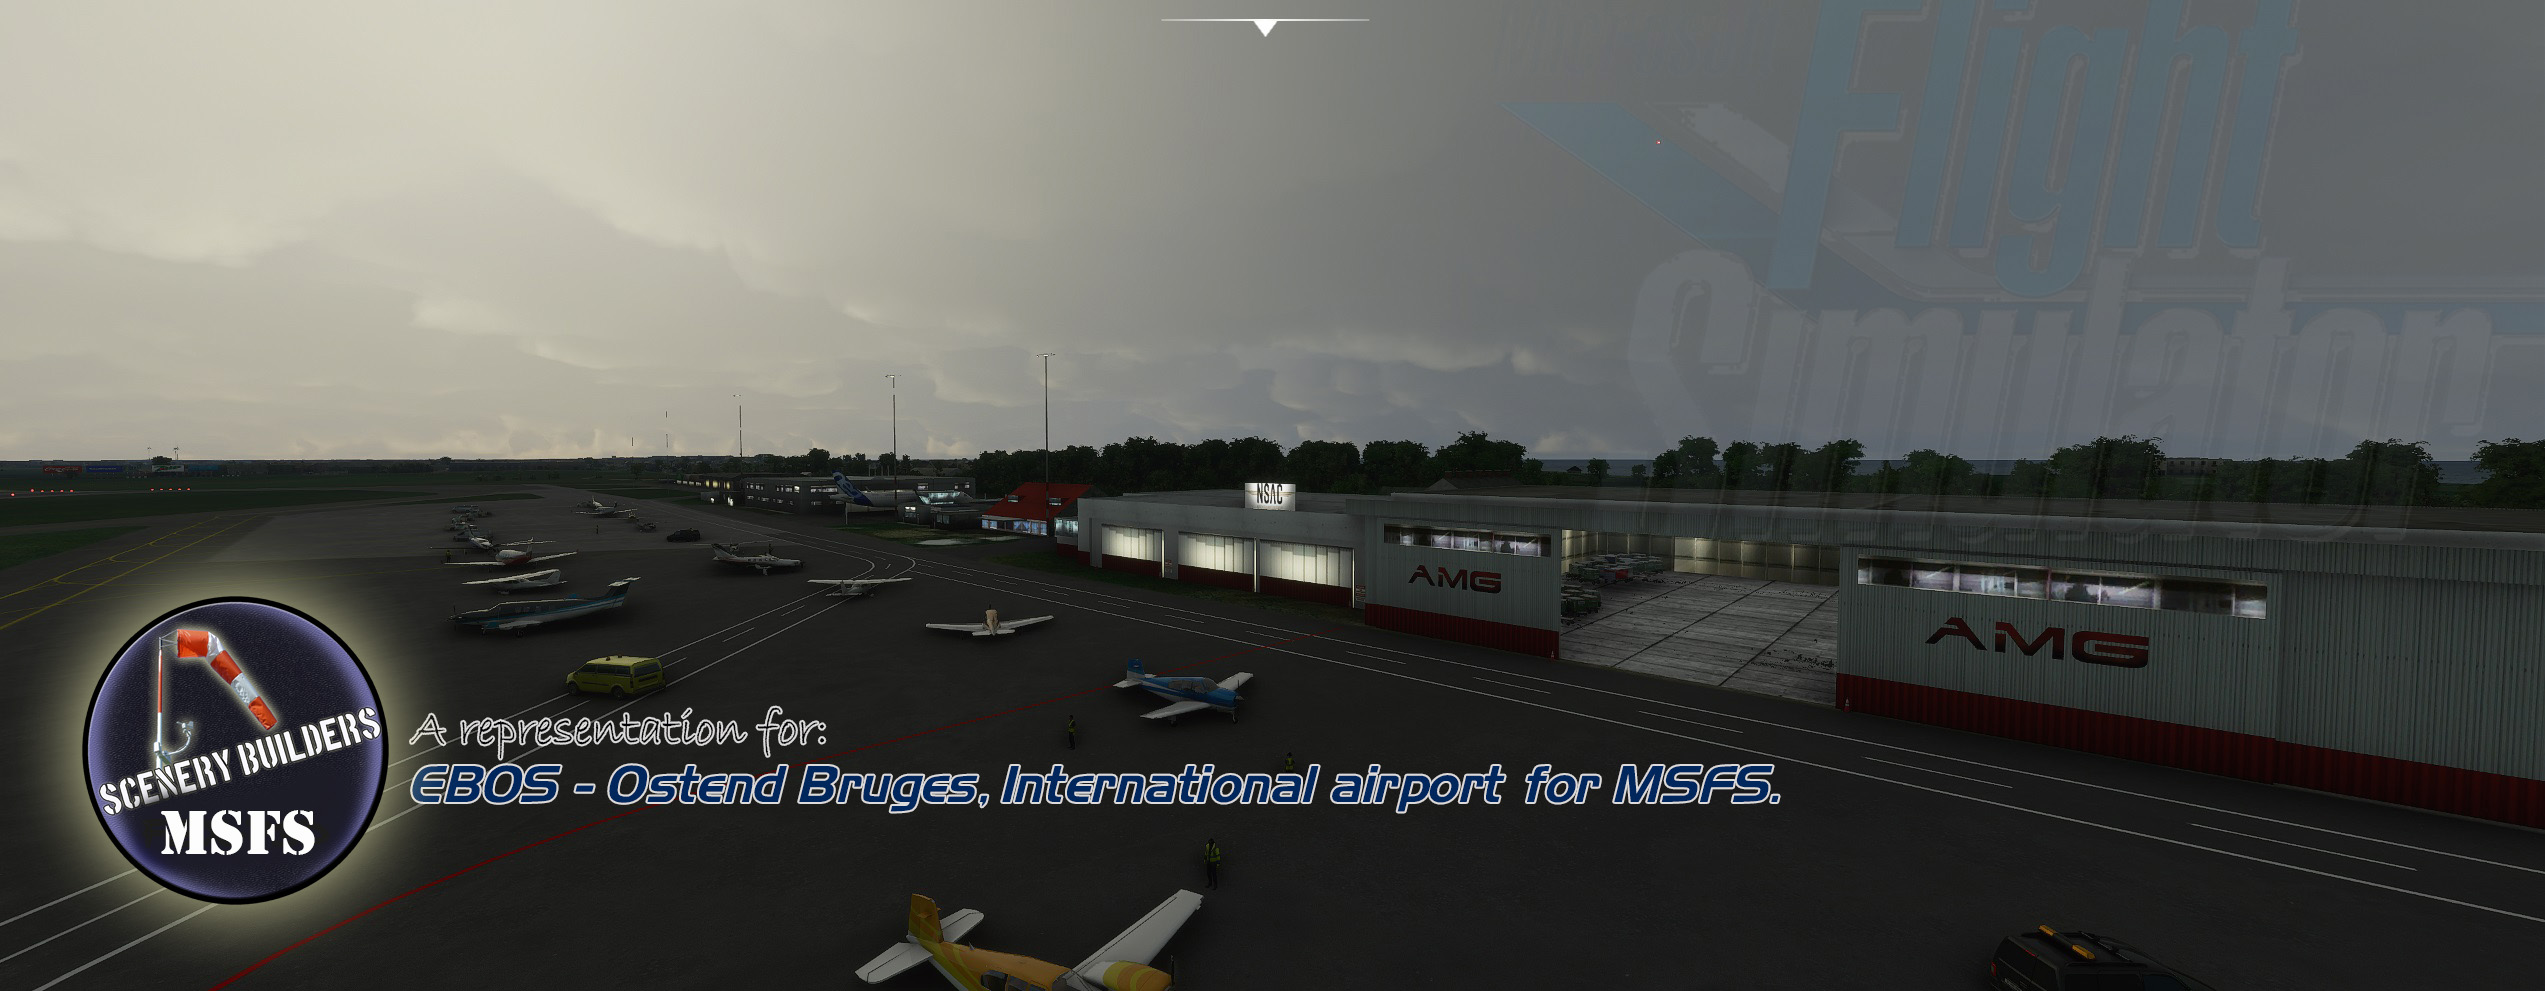 FSXCENERY - EBOS OSTEND BRUGES INTERNATIONAL AIRPORT MSFS